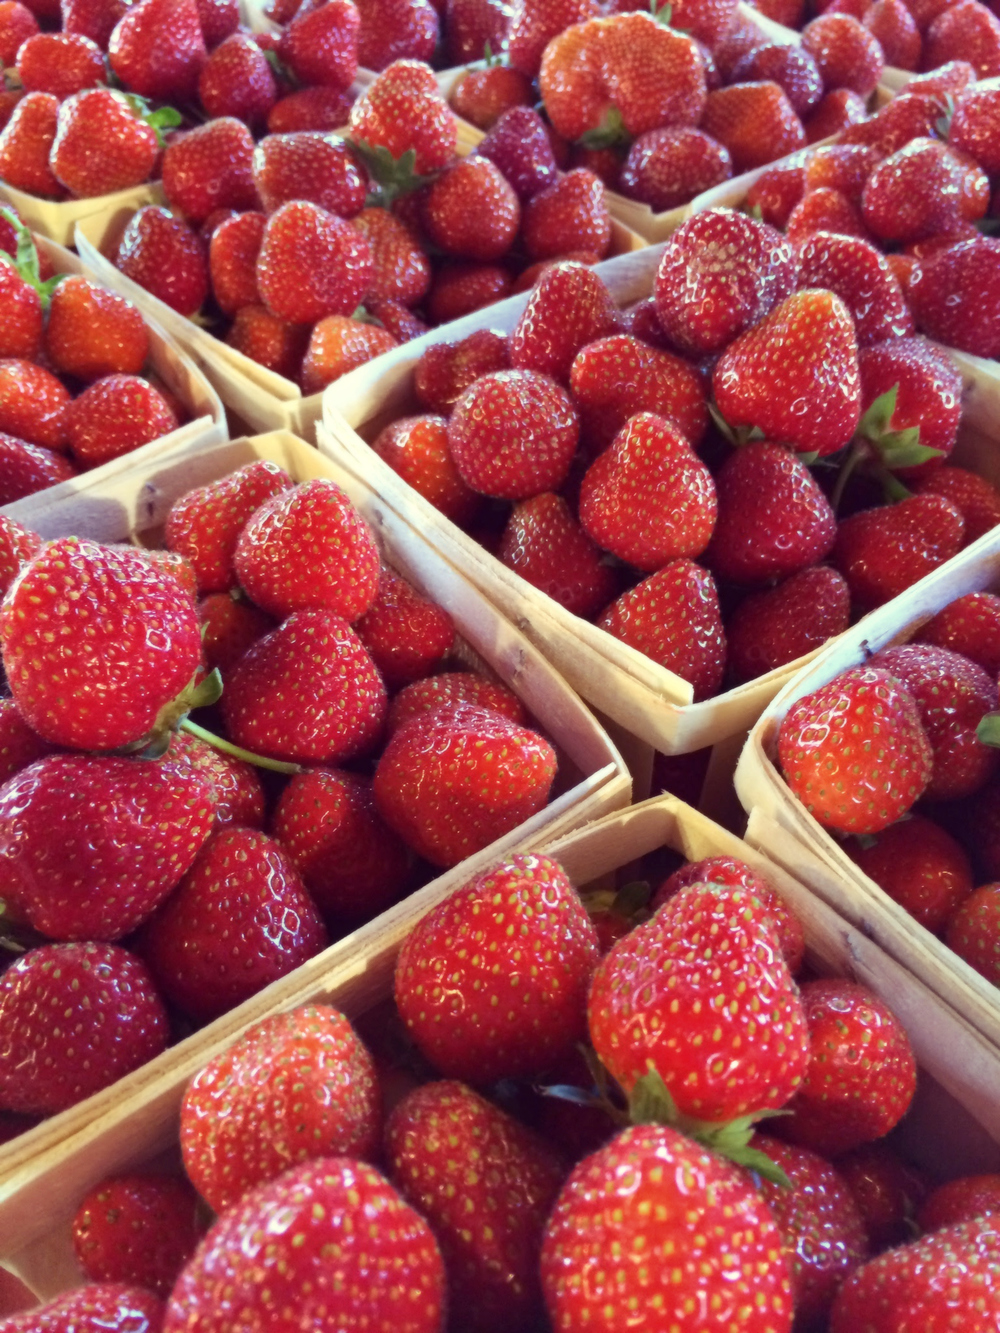 Strawberries At Market by Dena T Bray